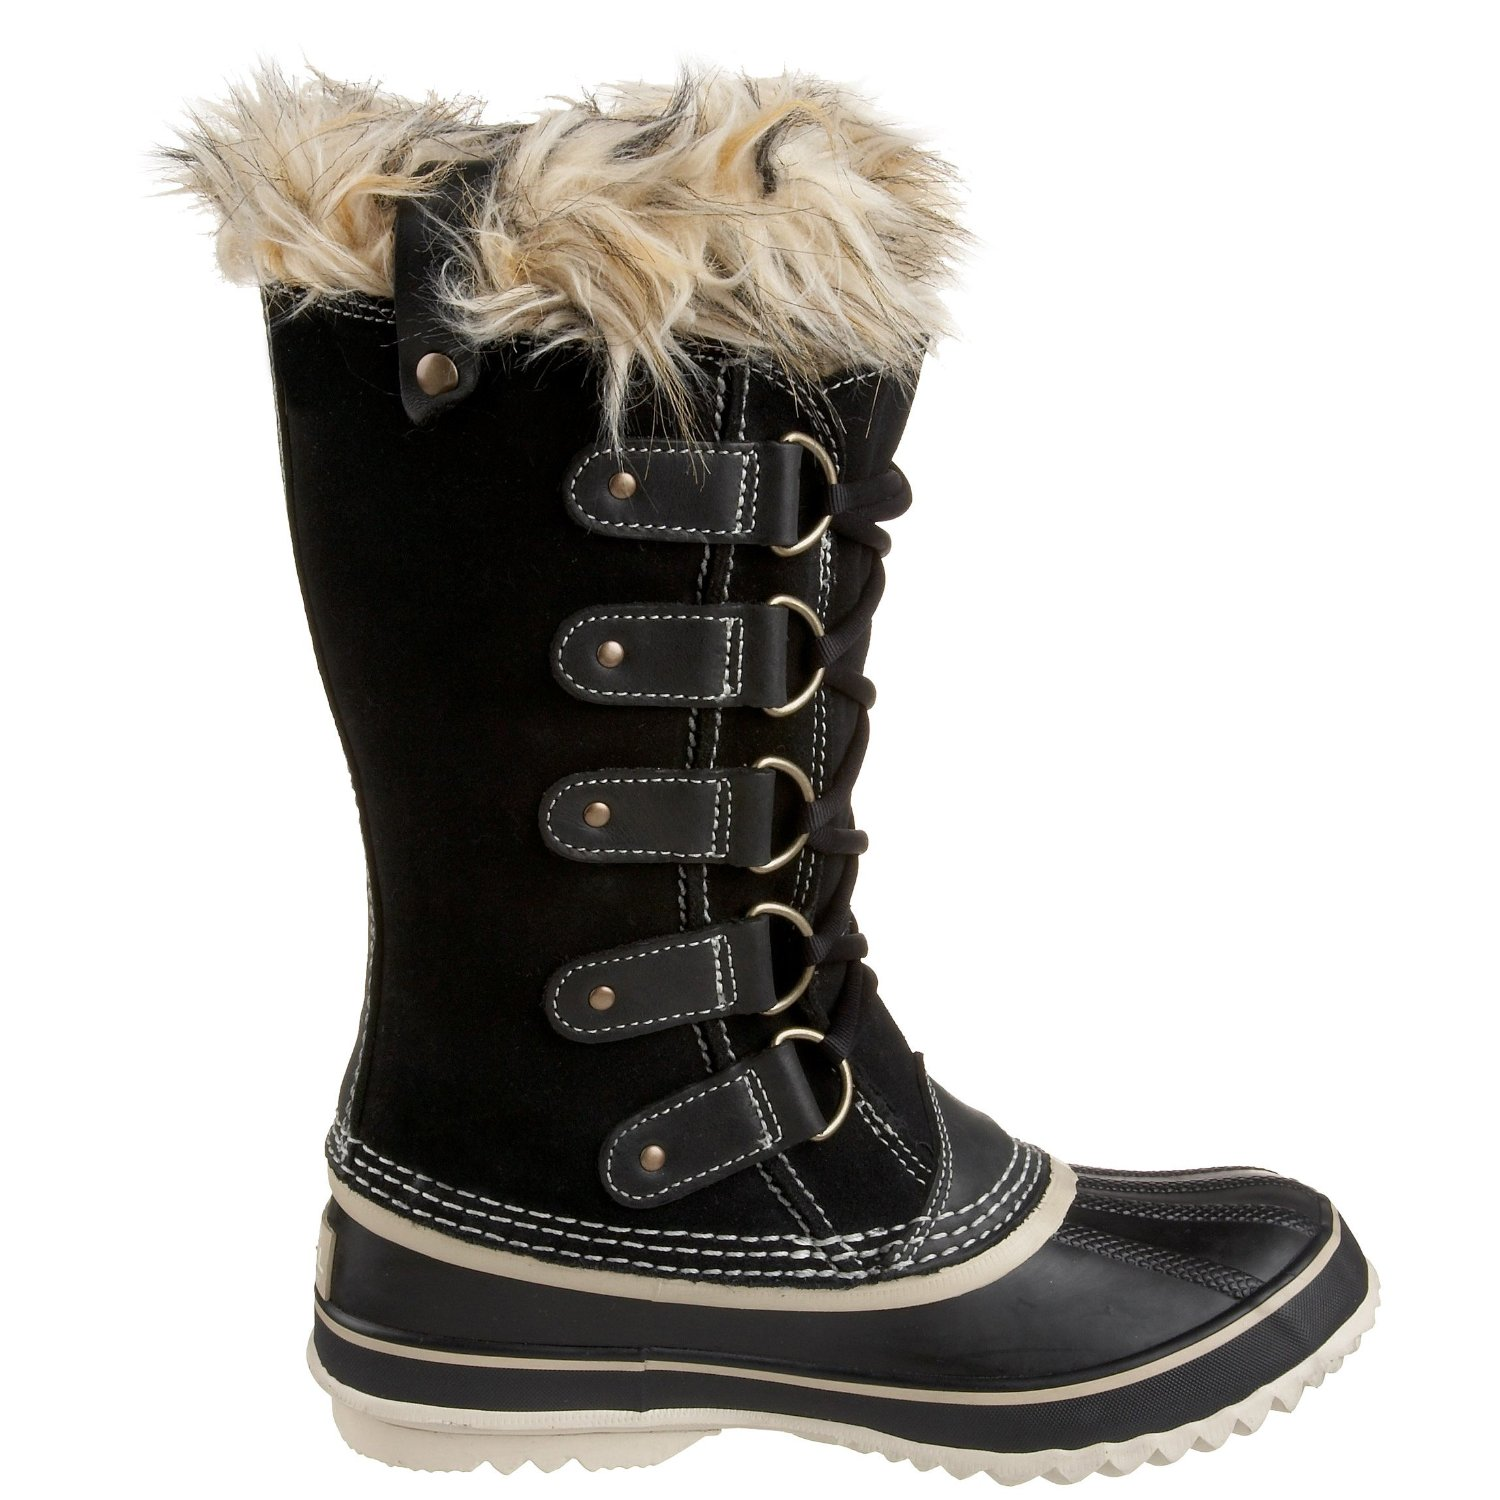 Womans Snow Boots M9TxfNoP